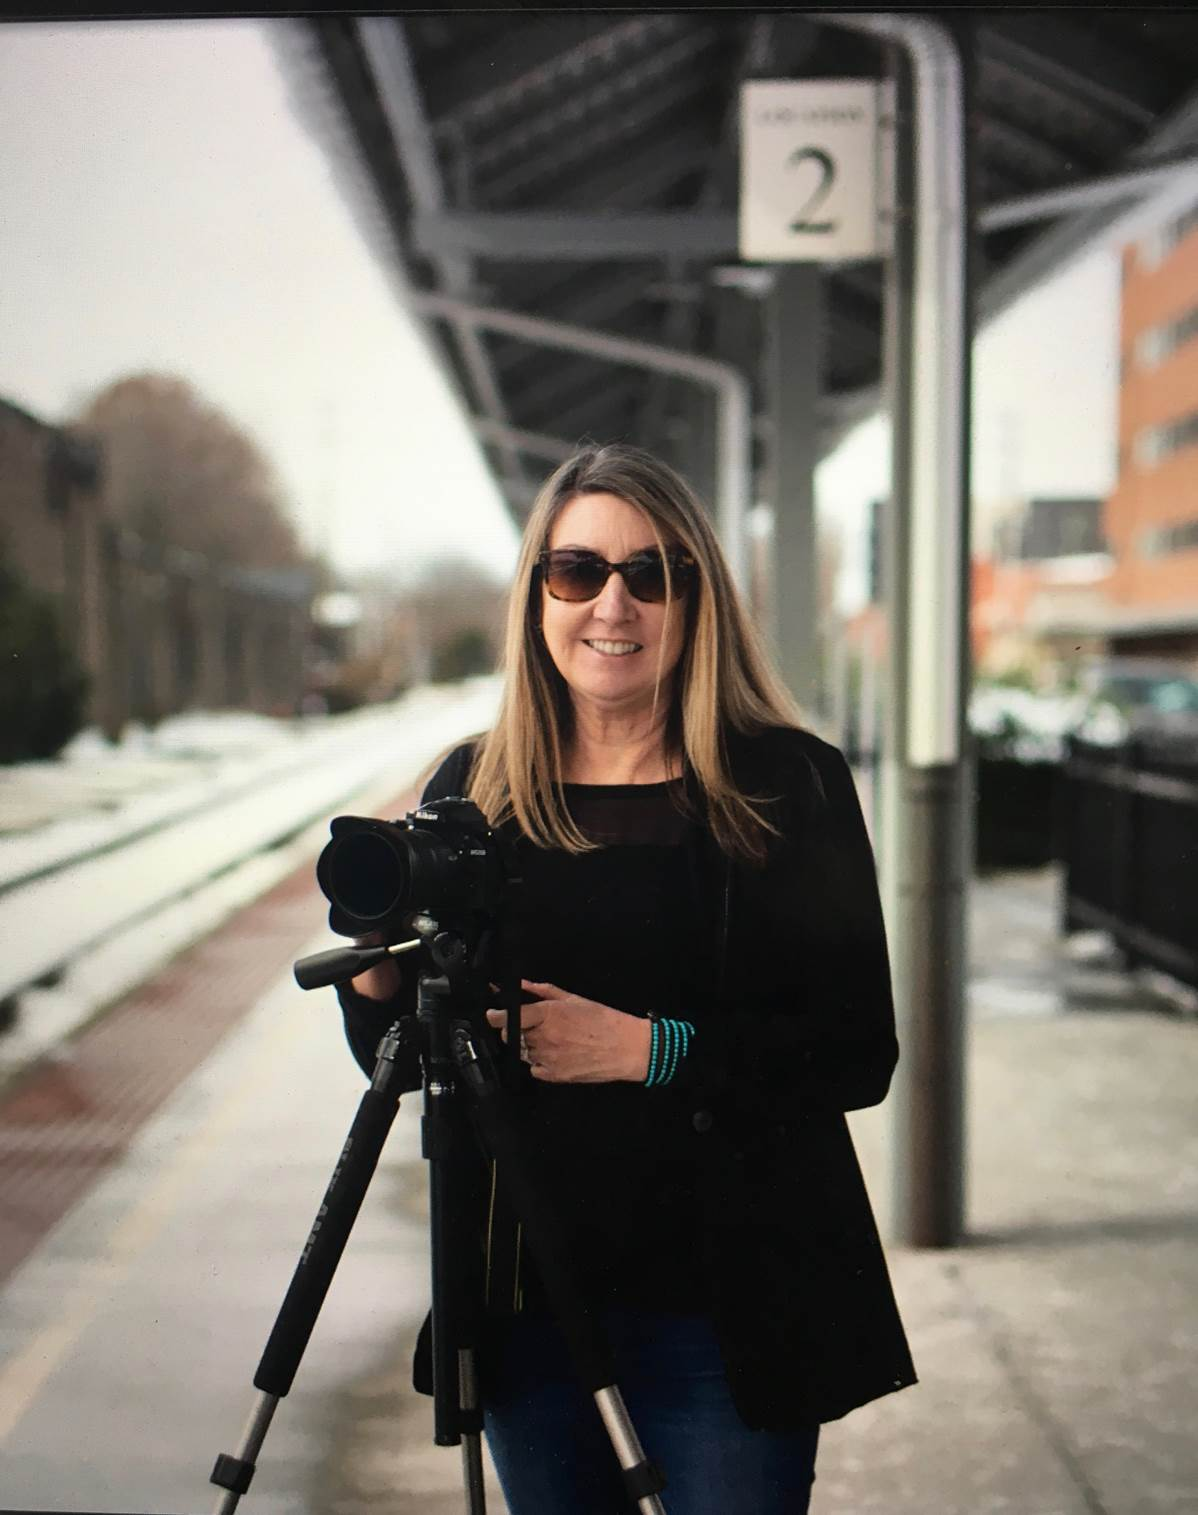 A woman stands on a train platform with a camera on a tripod smiling